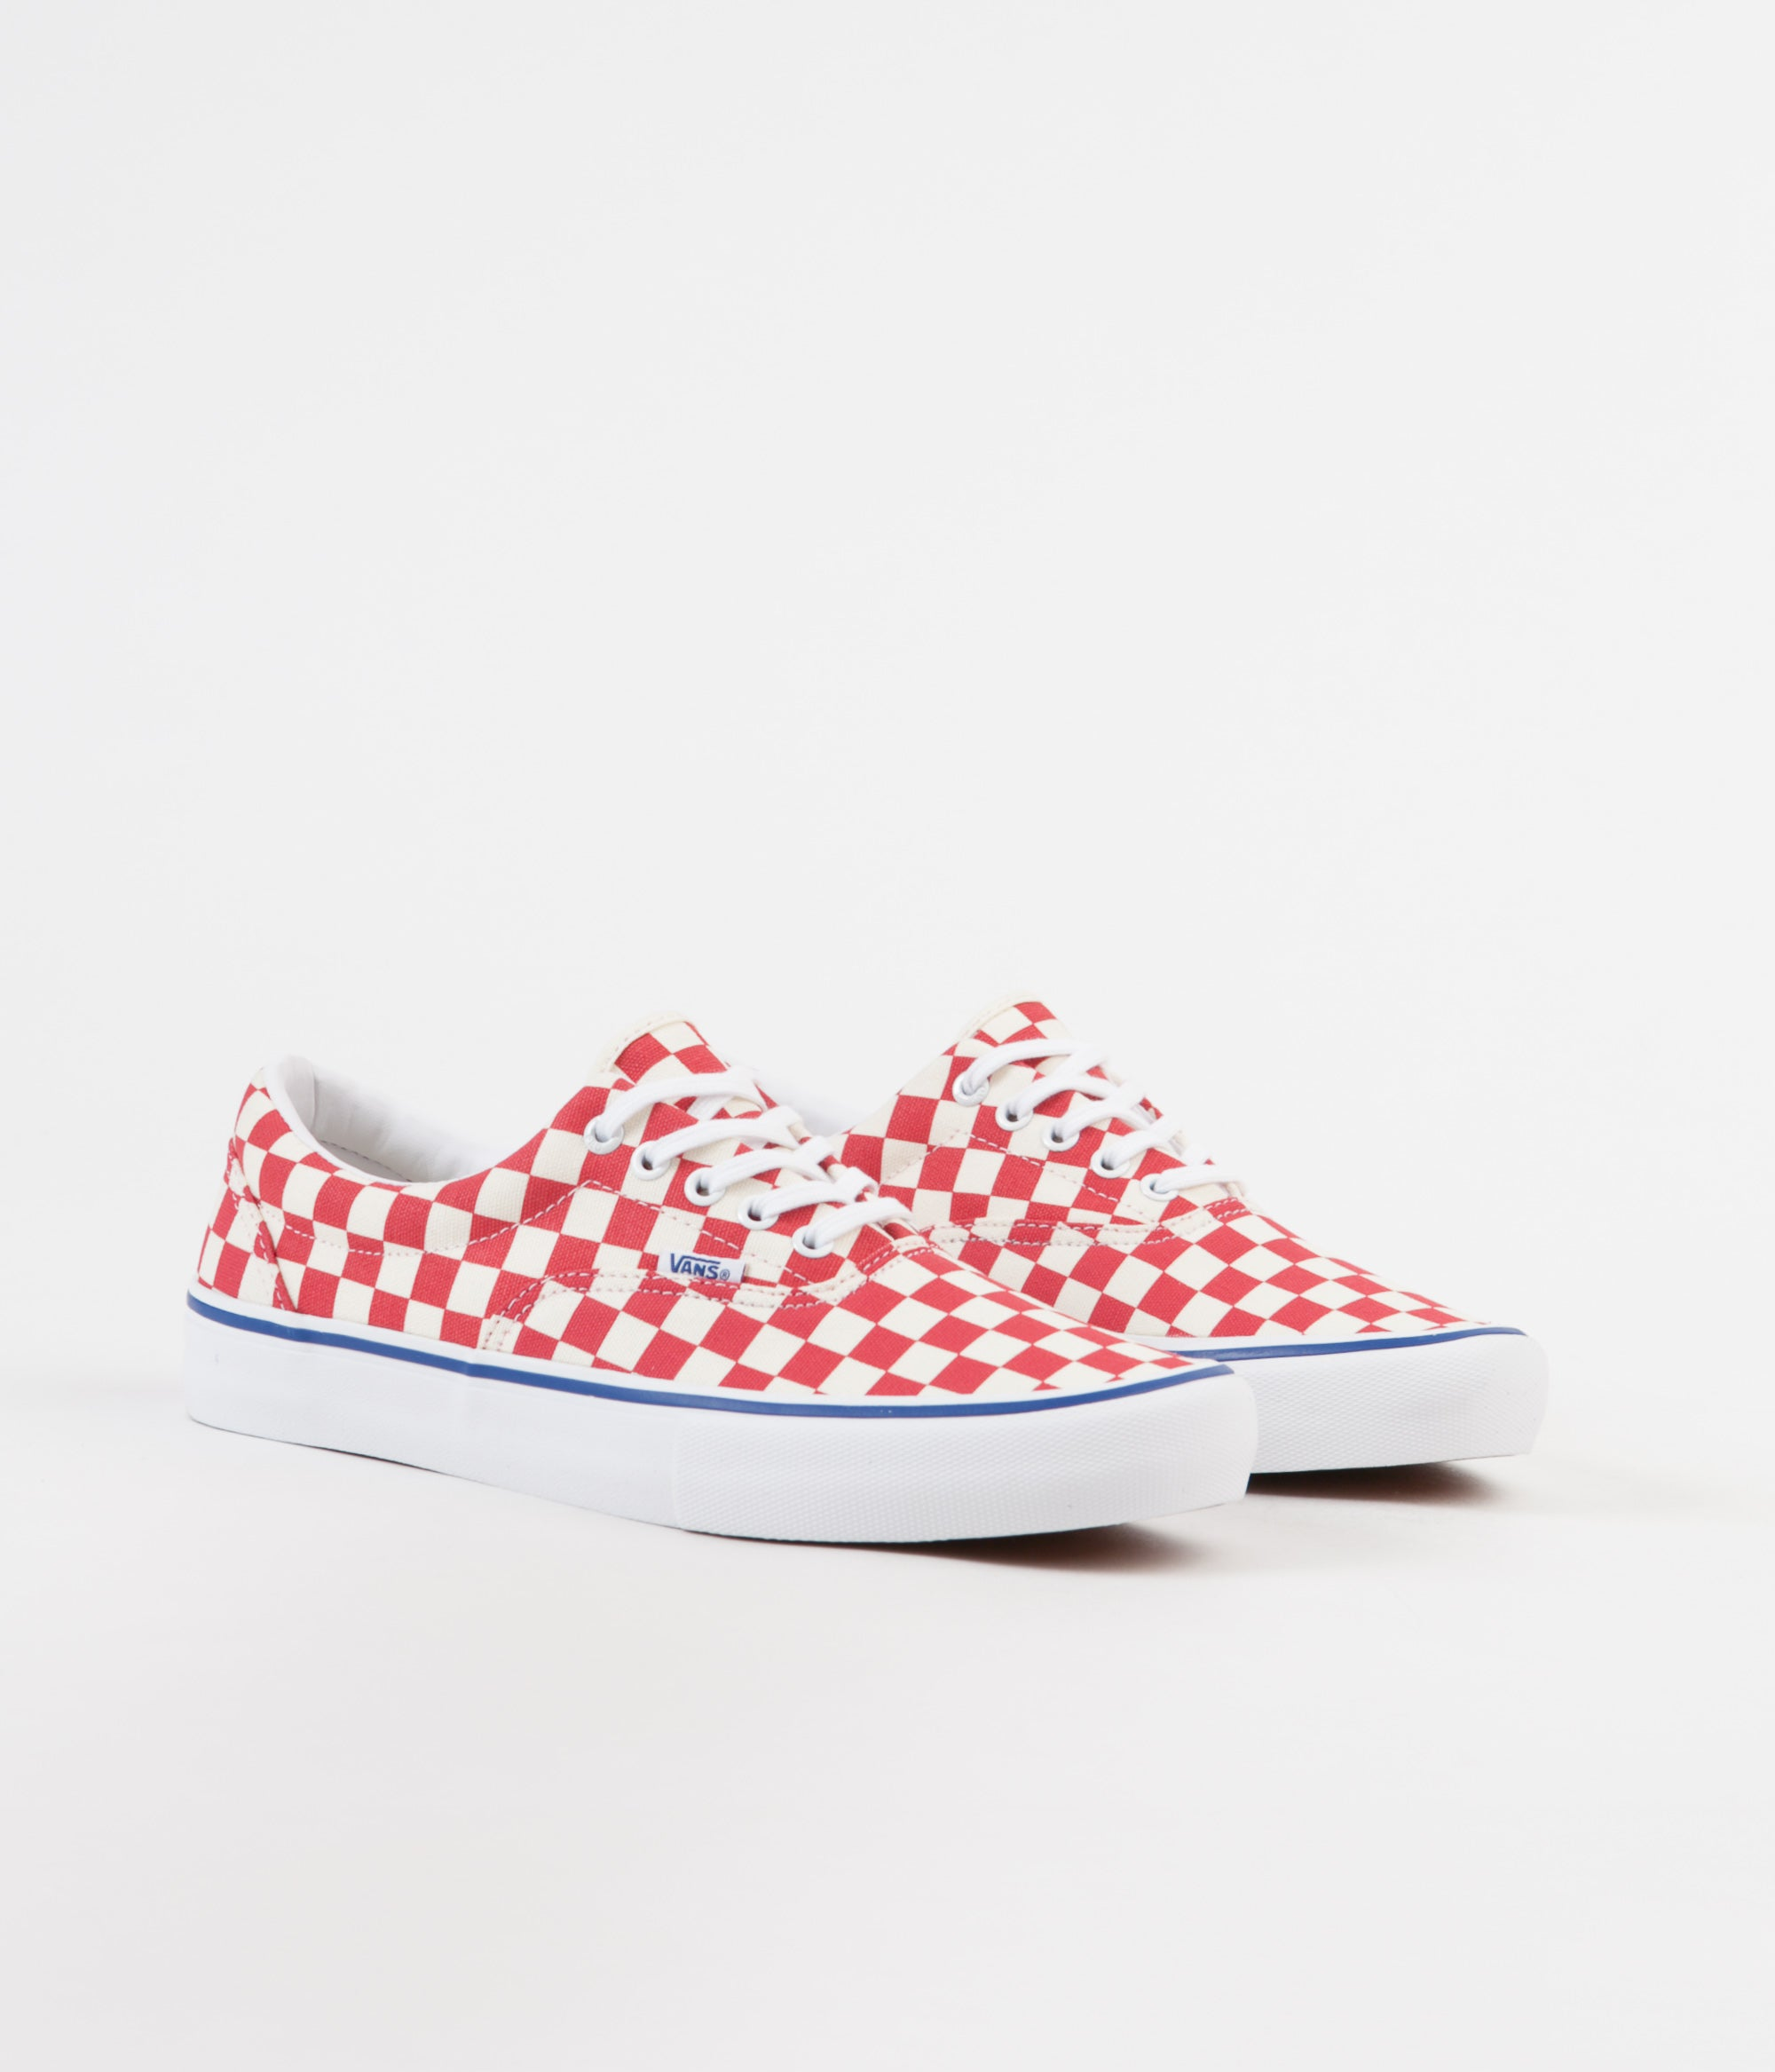 ... Vans Era Pro Checkerboard Shoes - Rococco Red   Classic White ... f75969da6